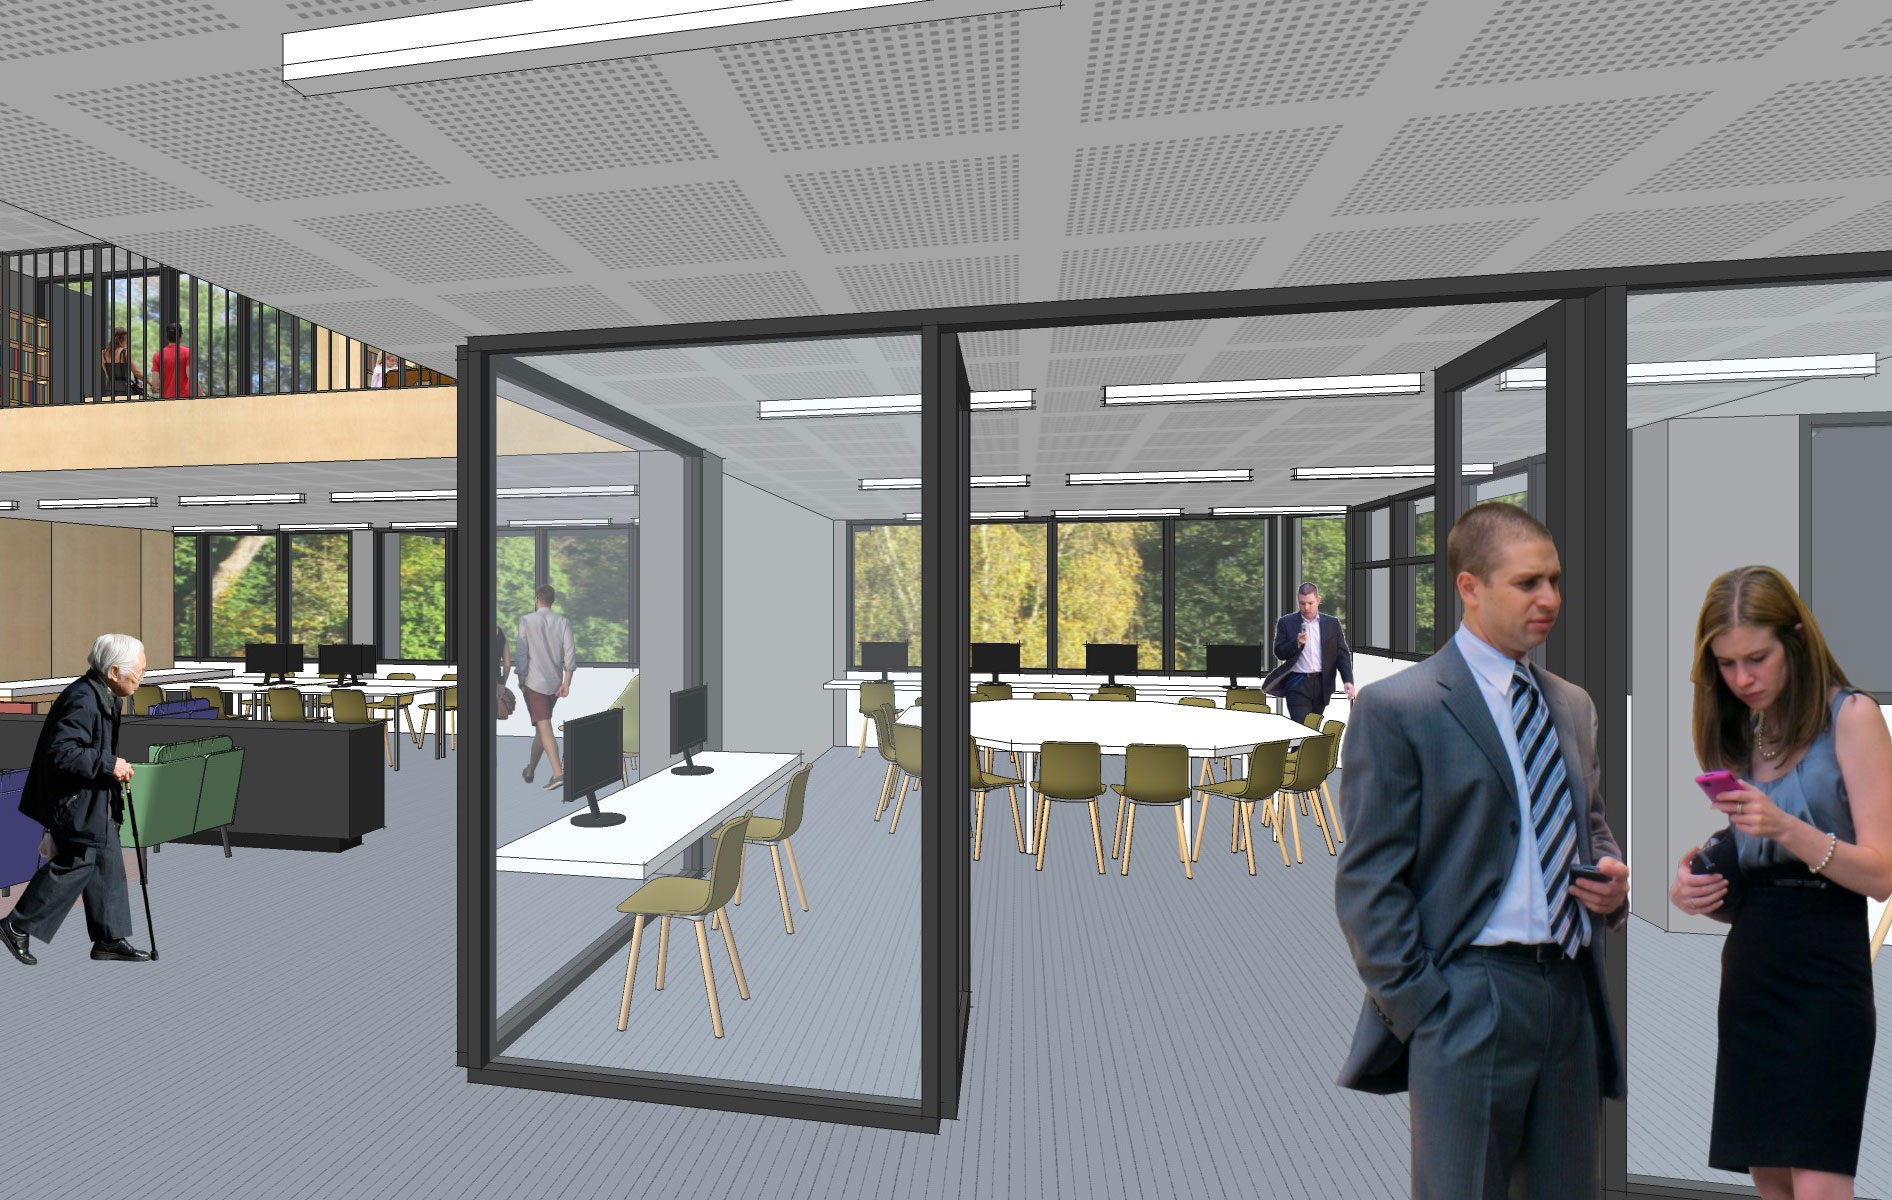 An artist's impressions of the new media & reading area at Springwood library